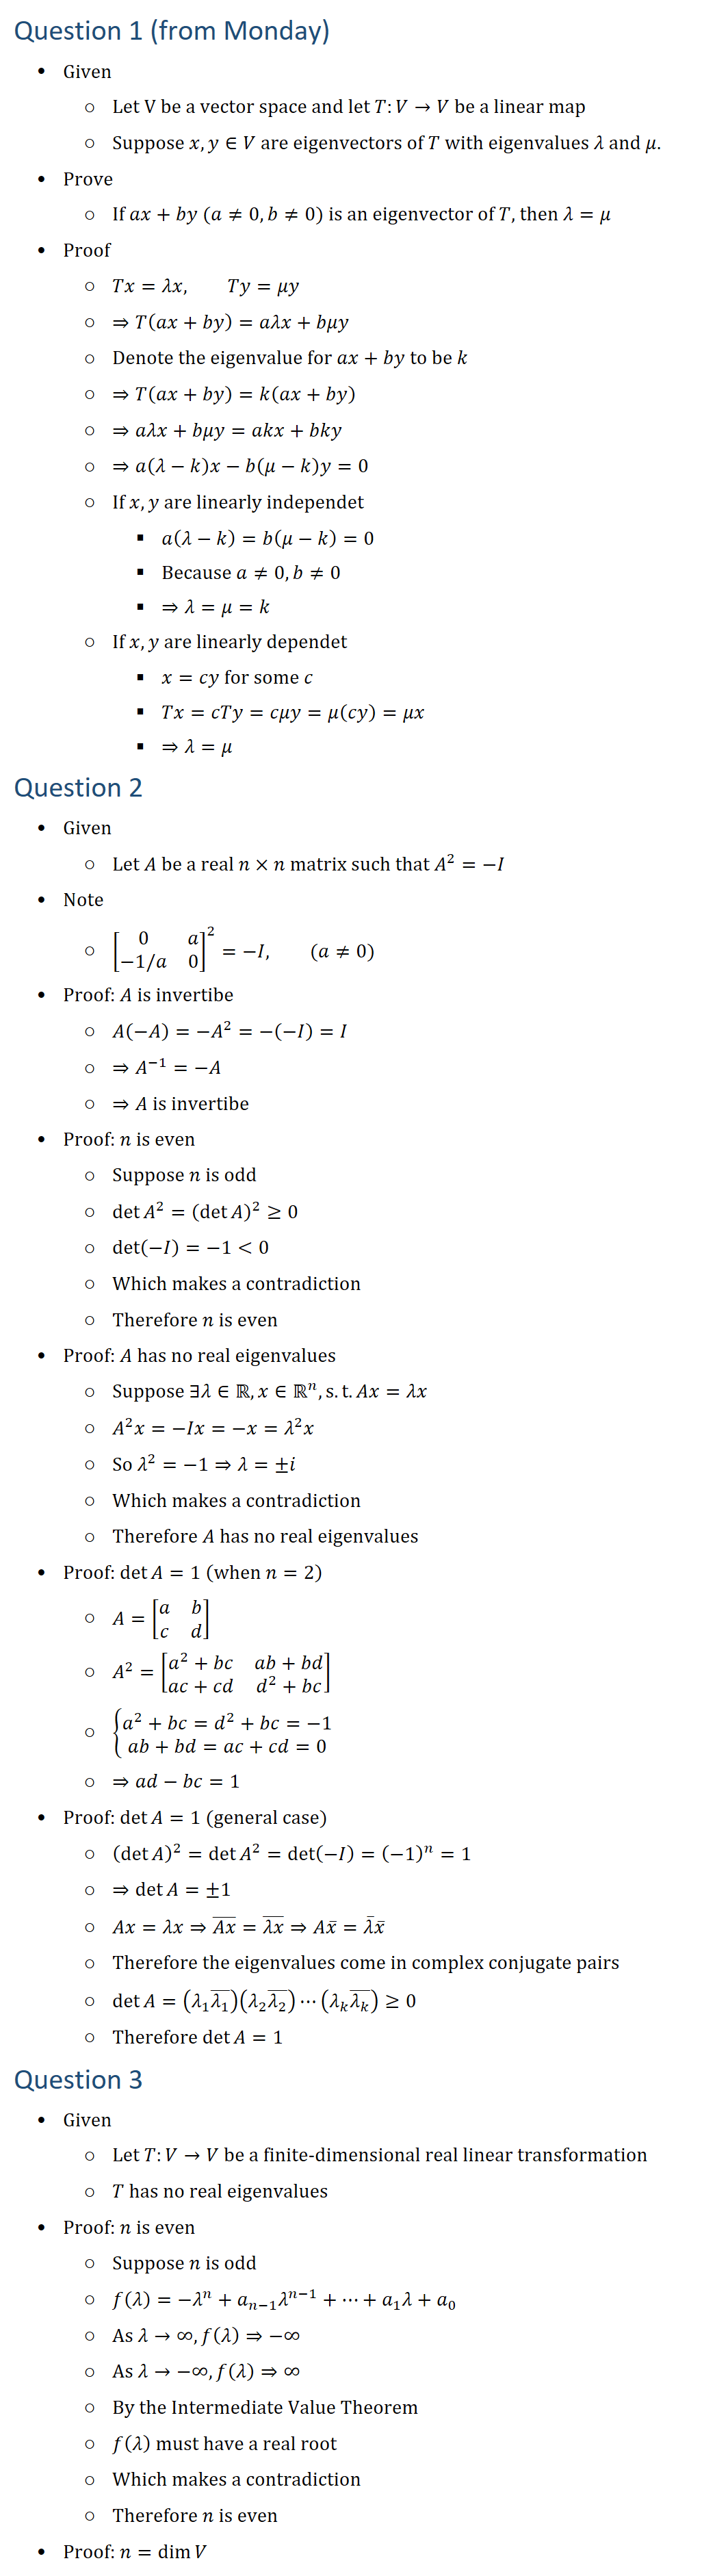 Question 1 (from Monday) • Given ○ Let V be a vector space and let T:V→V be a linear map ○ Suppose x,y∈V are eigenvectors of T with eigenvalues λ and μ. • Prove ○ If ax+by (a≠0, b≠0) is an eigenvector of T, then λ=μ • Proof ○ Tx=λx, Ty=μy ○ ⇒T(ax+by)=aλx+bμy ○ Denote the eigenvalue for ax+by to be k ○ ⇒T(ax+by)=k(ax+by) ○ ⇒aλx+bμy=akx+bky ○ ⇒a(λ−k)x−b(μ−k)y=0 ○ If x,y are linearly independet § a(λ−k)=b(μ−k)=0 § Because a≠0, b≠0 § ⇒λ=μ=k ○ If x,y are linearly dependet § x=cy for some c § Tx=cTy=cμy=μ(cy)=μx § ⇒λ=μ Question 2 • Given ○ Let A be a real n×n matrix such that A^2=−I • Note ○ [■8(0&a@−1/a&0)]^2=−I, (a≠0) • Proof: A is invertibe ○ A(−A)=−A^2=−(−I)=I ○ ⇒A^(−1)=−A ○ ⇒A is invertibe • Proof: n is even ○ Suppose n is odd ○ det〖A^2 〗=(detA )^2≥0 ○ det(−I)=−1<0 ○ Which makes a contradiction ○ Therefore n is even • Proof: A has no real eigenvalues ○ Suppose ∃λ∈R, x∈Rn, s.t. Ax=λx ○ A^2 x=−Ix=−x=λ^2 x ○ So λ^2=−1⇒λ=±i ○ Which makes a contradiction ○ Therefore A has no real eigenvalues • Proof: detA=1 (when n=2) ○ A=[■8(a&b@c&d)] ○ A^2=[■8(a^2+bc&ab+bd@ac+cd&d^2+bc)] ○ {█(a^2+bc=d^2+bc=−1@ab+bd=ac+cd=0)┤ ○ ⇒ad−bc=1 • Proof: detA=1 (general case) ○ (detA )^2=det〖A^2 〗=det(−I)=(−1)^n=1 ○ ⇒detA=±1 ○ Ax=λx⇒(Ax) ̅=(λx) ̅⇒Ax ̅=λ ̅x ̅ ○ Therefore the eigenvalues come in complex conjugate pairs ○ detA=(λ_1 (λ_1 ) ̅ )(λ_2 (λ_2 ) ̅ )⋯(λ_k (λ_k ) ̅ )≥0 ○ Therefore detA=1 Question 3 • Given ○ Let T:V→V be a finite-dimensional real linear transformation ○ T has no real eigenvalues • Proof: n is even ○ Suppose n is odd ○ f(λ)=−λ^n+a_(n−1) λ^(n−1)+…+a_1 λ+a_0 ○ As λ→∞, f(λ)⇒−∞ ○ As λ→−∞, f(λ)⇒∞ ○ By the Intermediate Value Theorem ○ f(λ) must have a real root ○ Which makes a contradiction ○ Therefore n is even • Proof: n=dimV